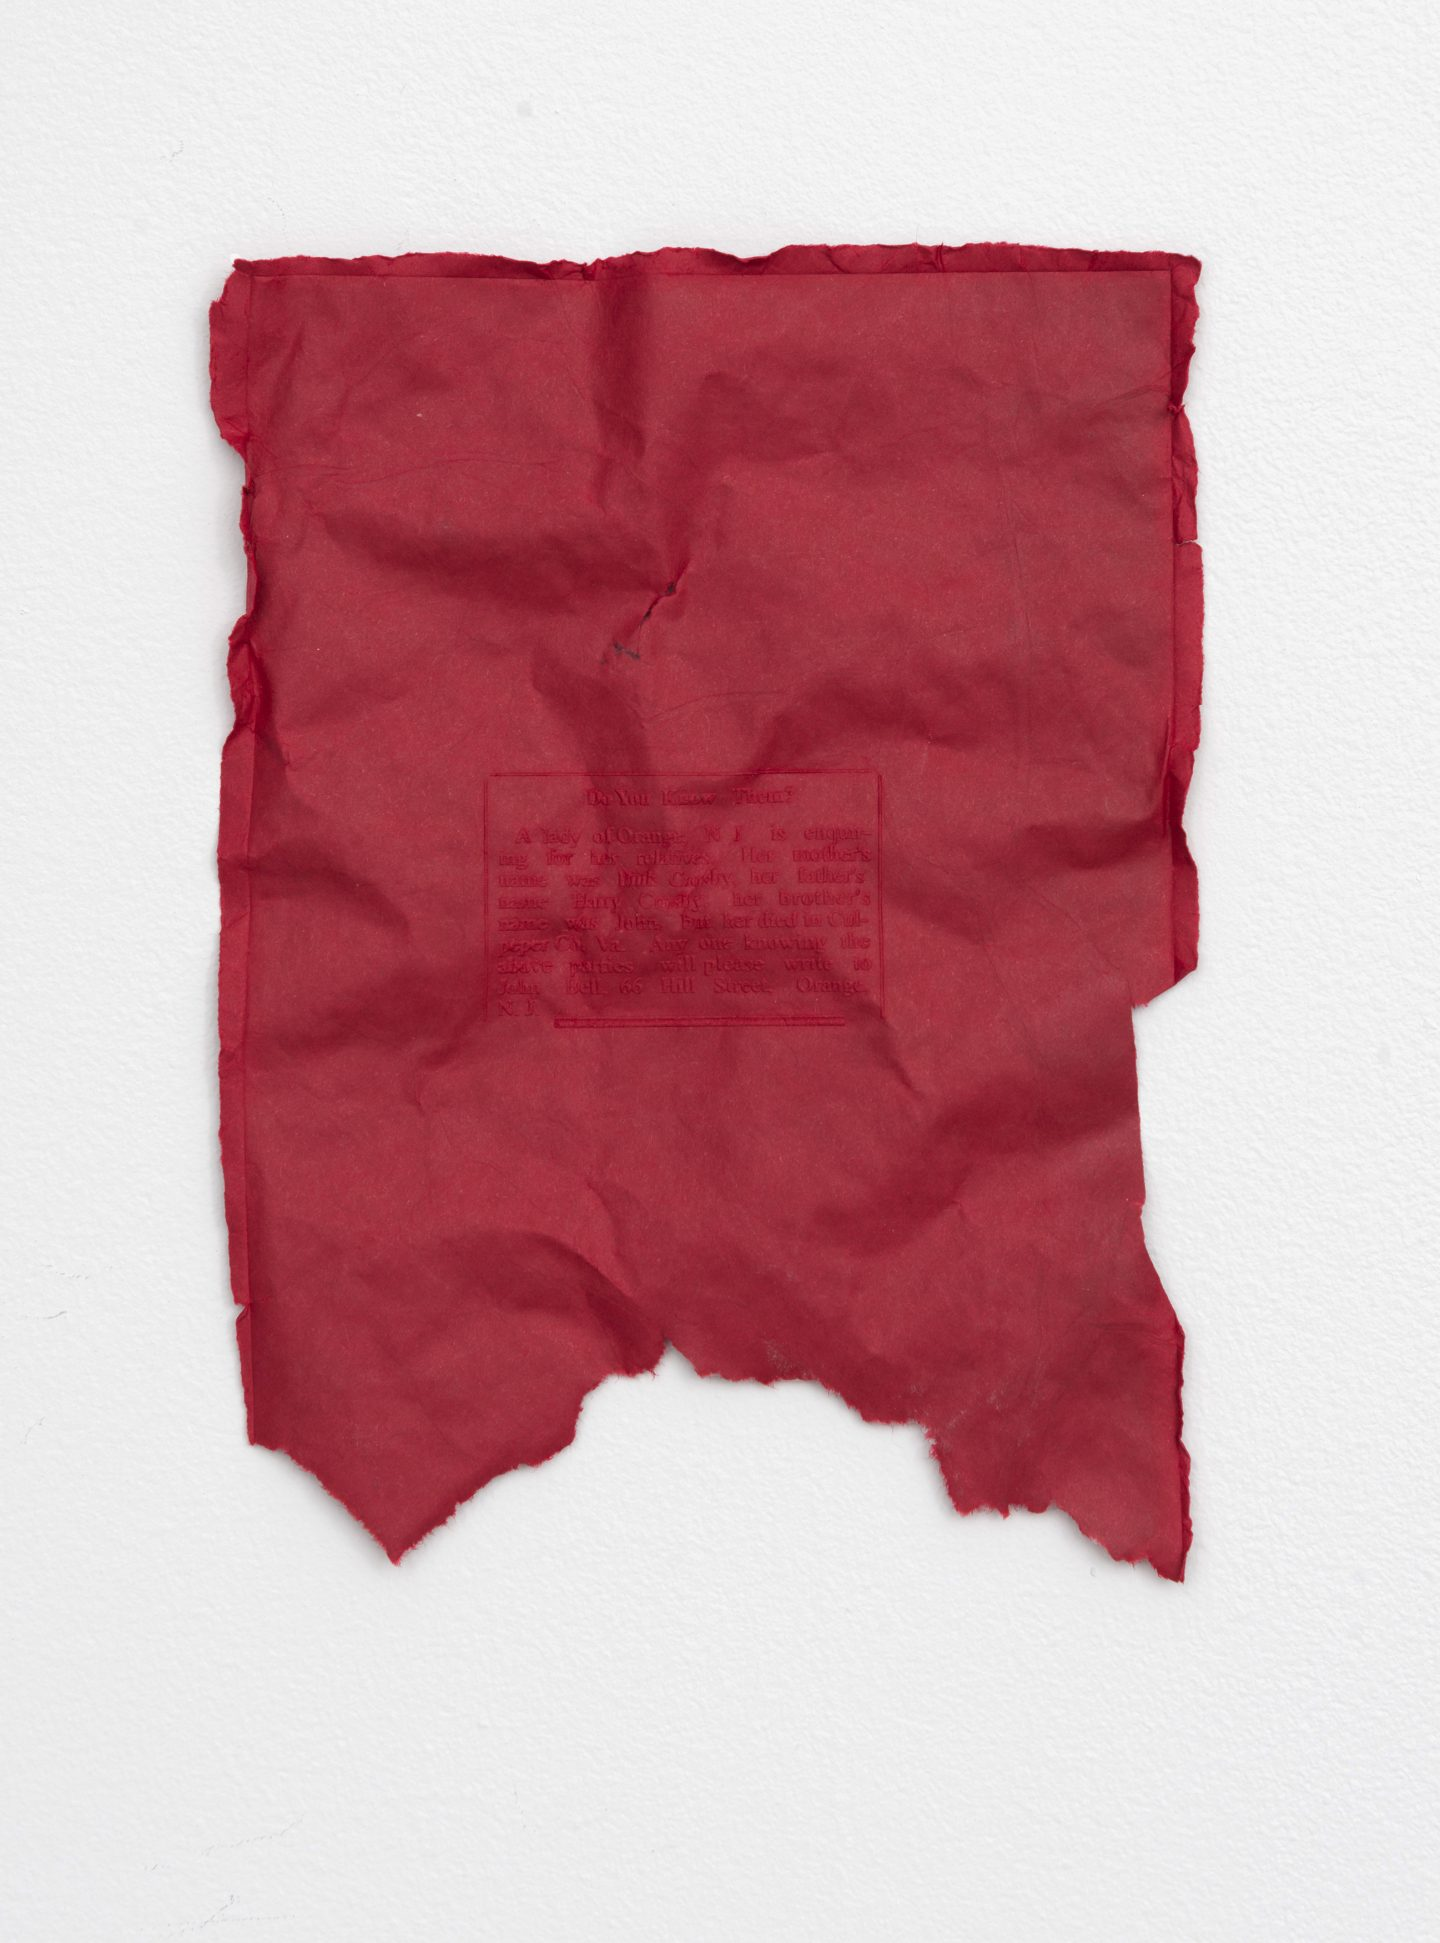 On a white wall, a single piece of crumpled and torn red paper.